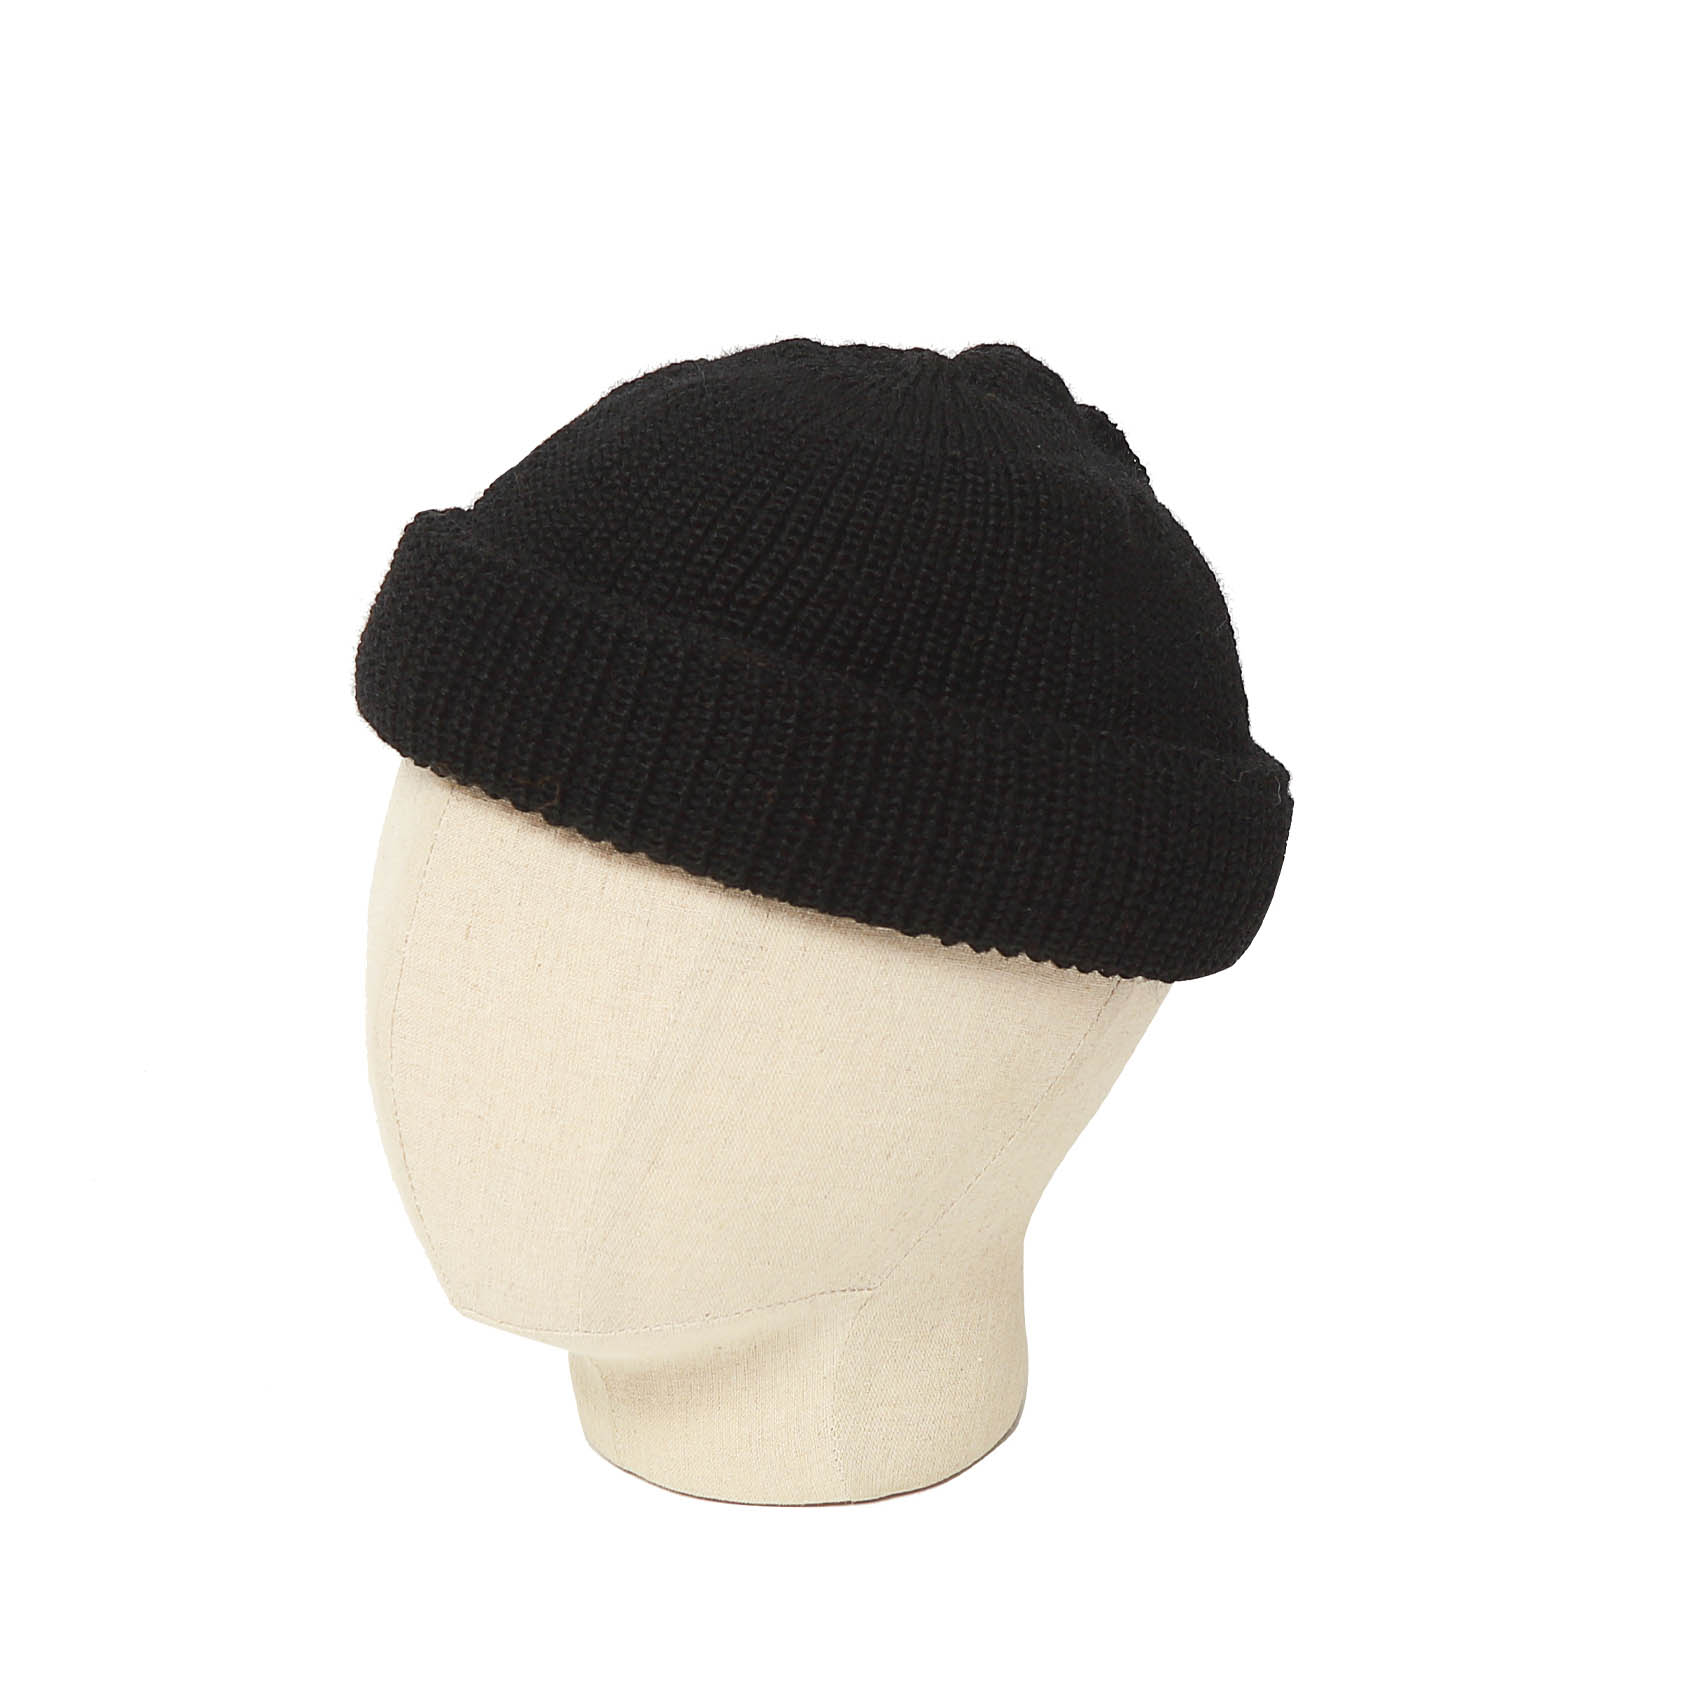 DECK HAT - BLACK